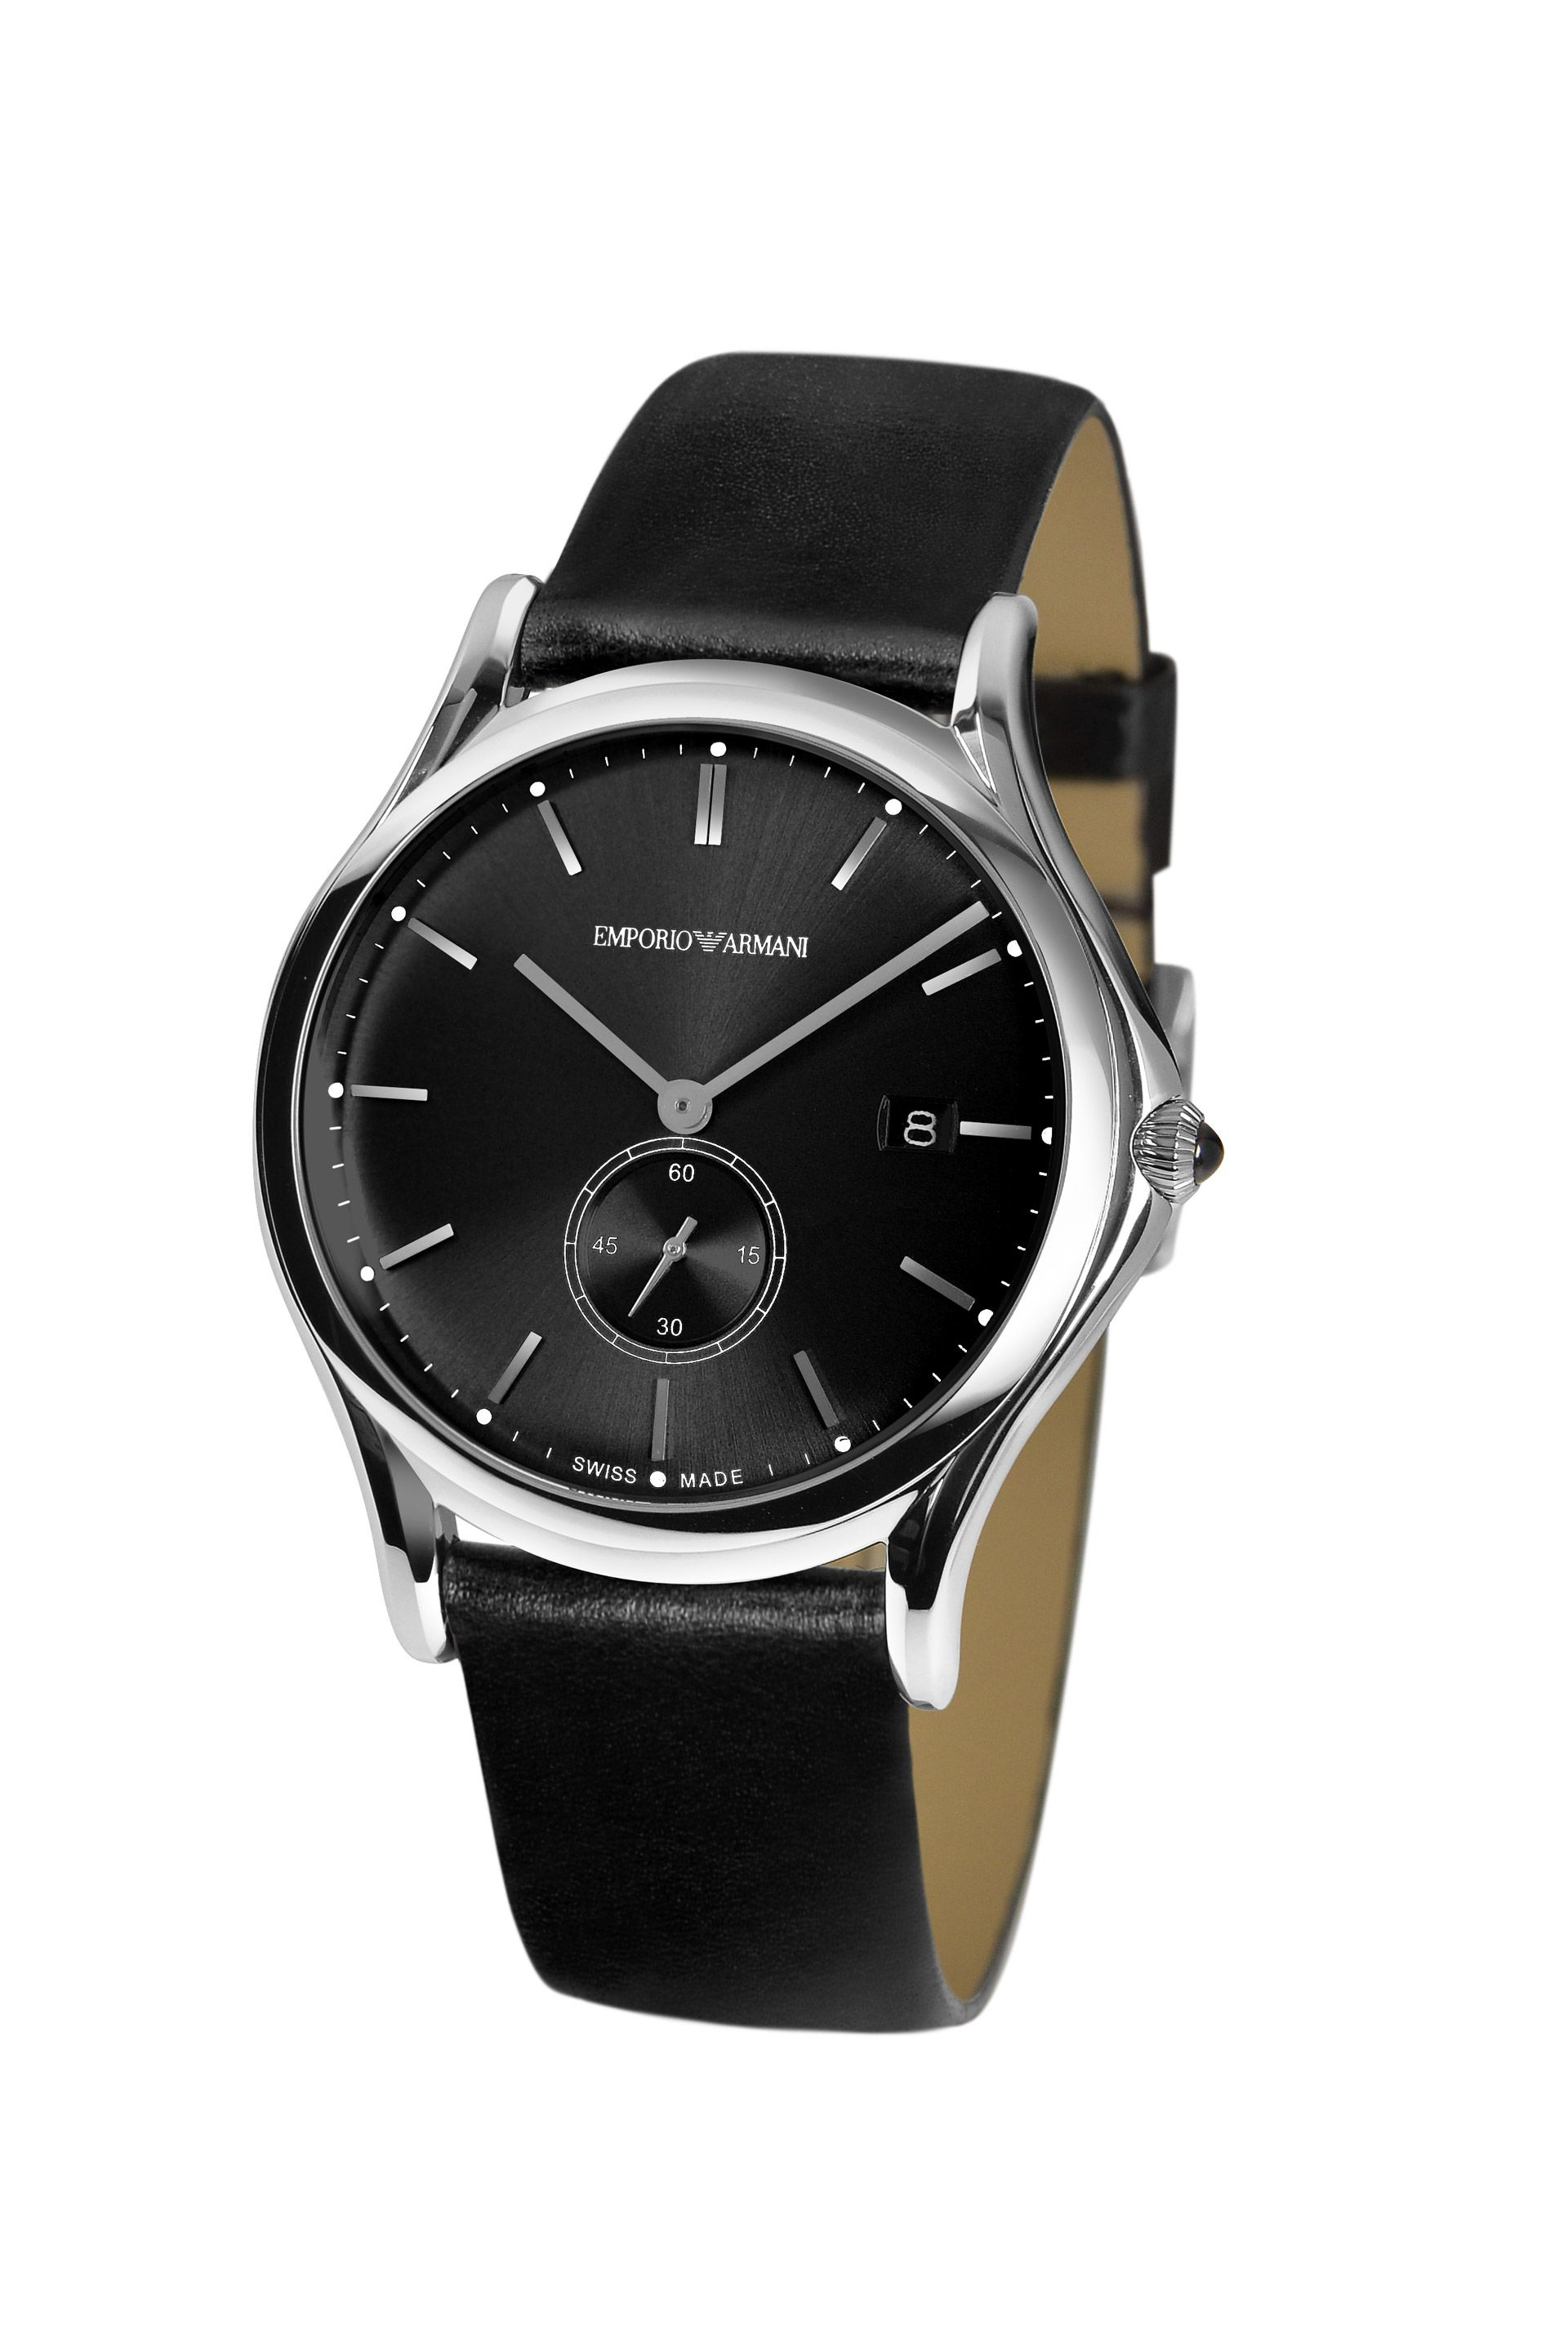 f8f6a8f4aabc Emporio Armani Watch Swiss Made Collection in Black - Lyst